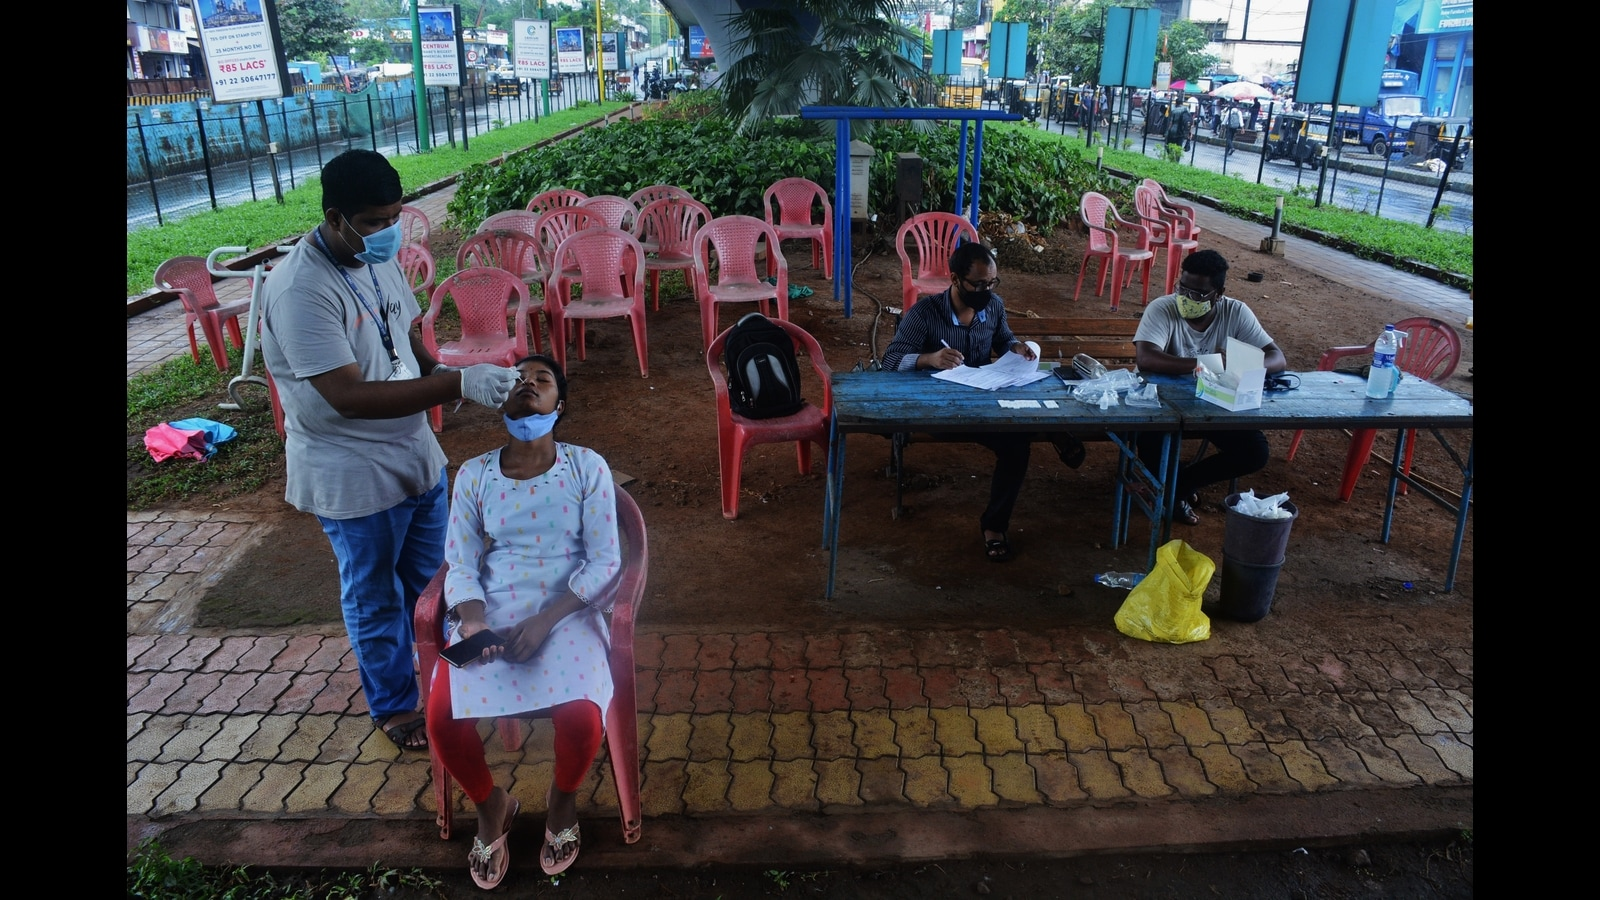 Thane district sees overall decline in positive Covid cases